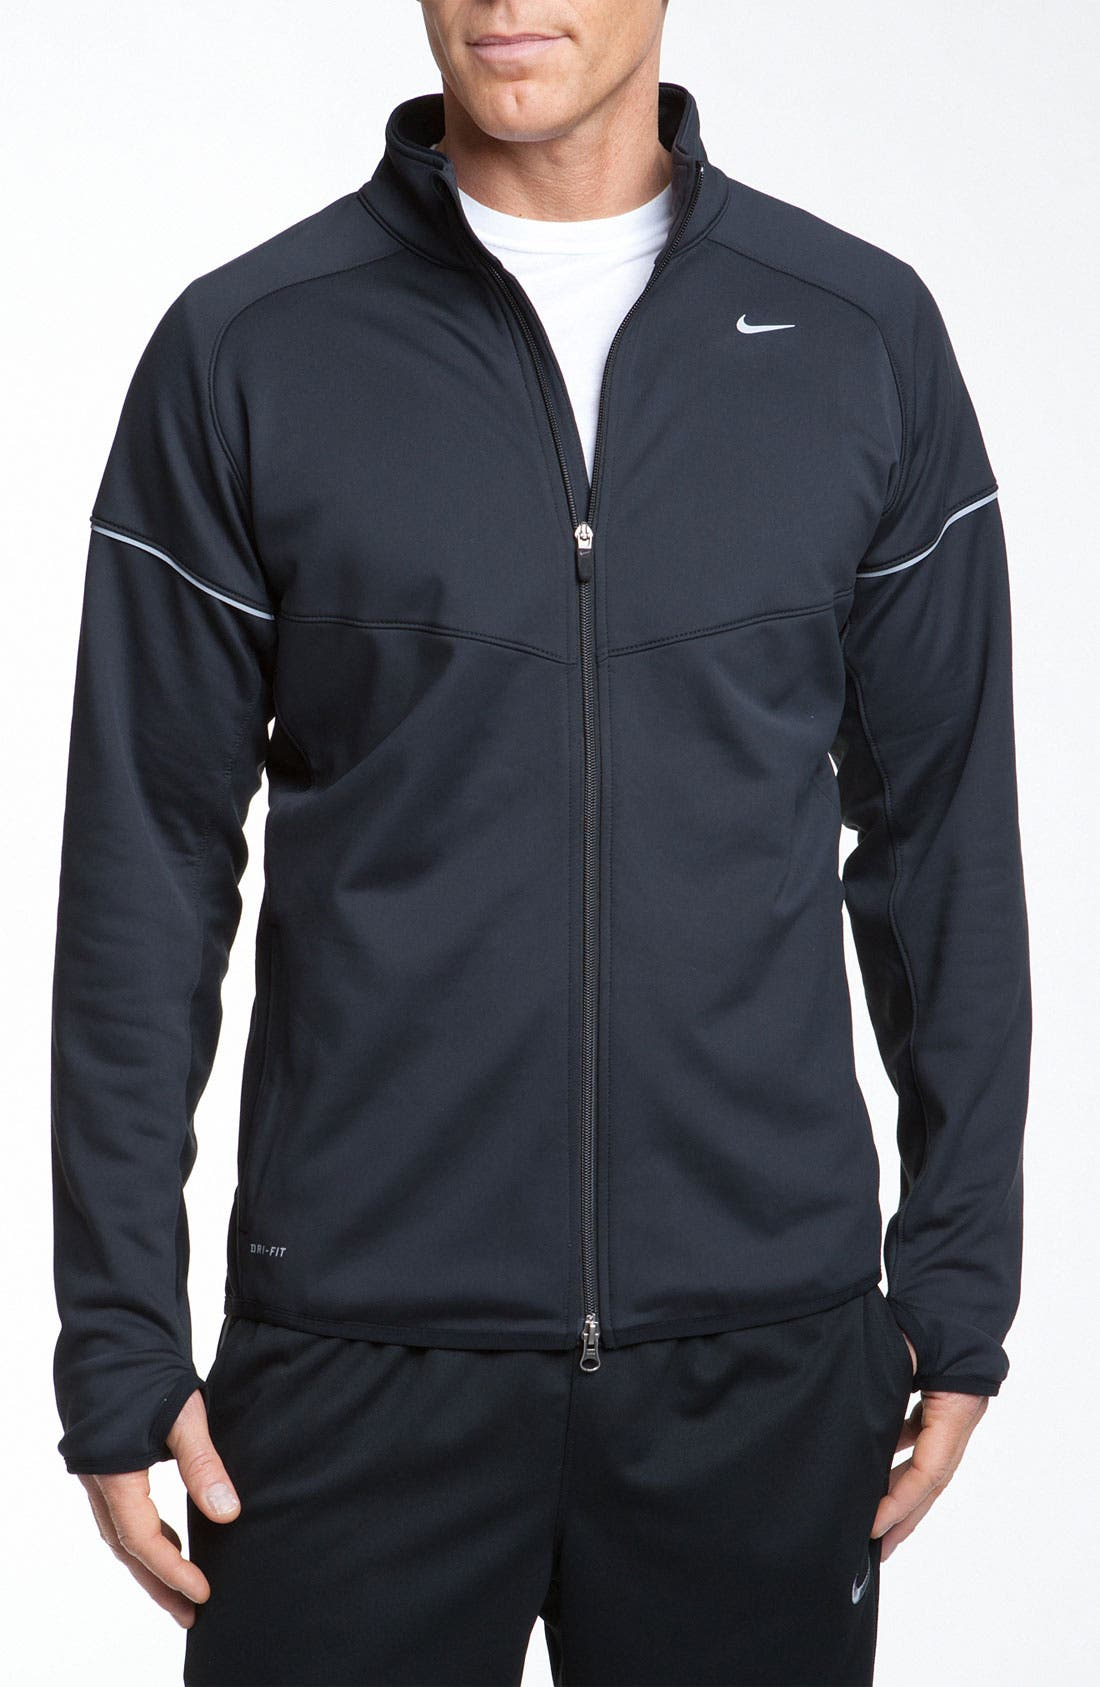 Alternate Image 1 Selected - Nike 'Element' Thermal Dri-FIT Water Resistant Running Jacket